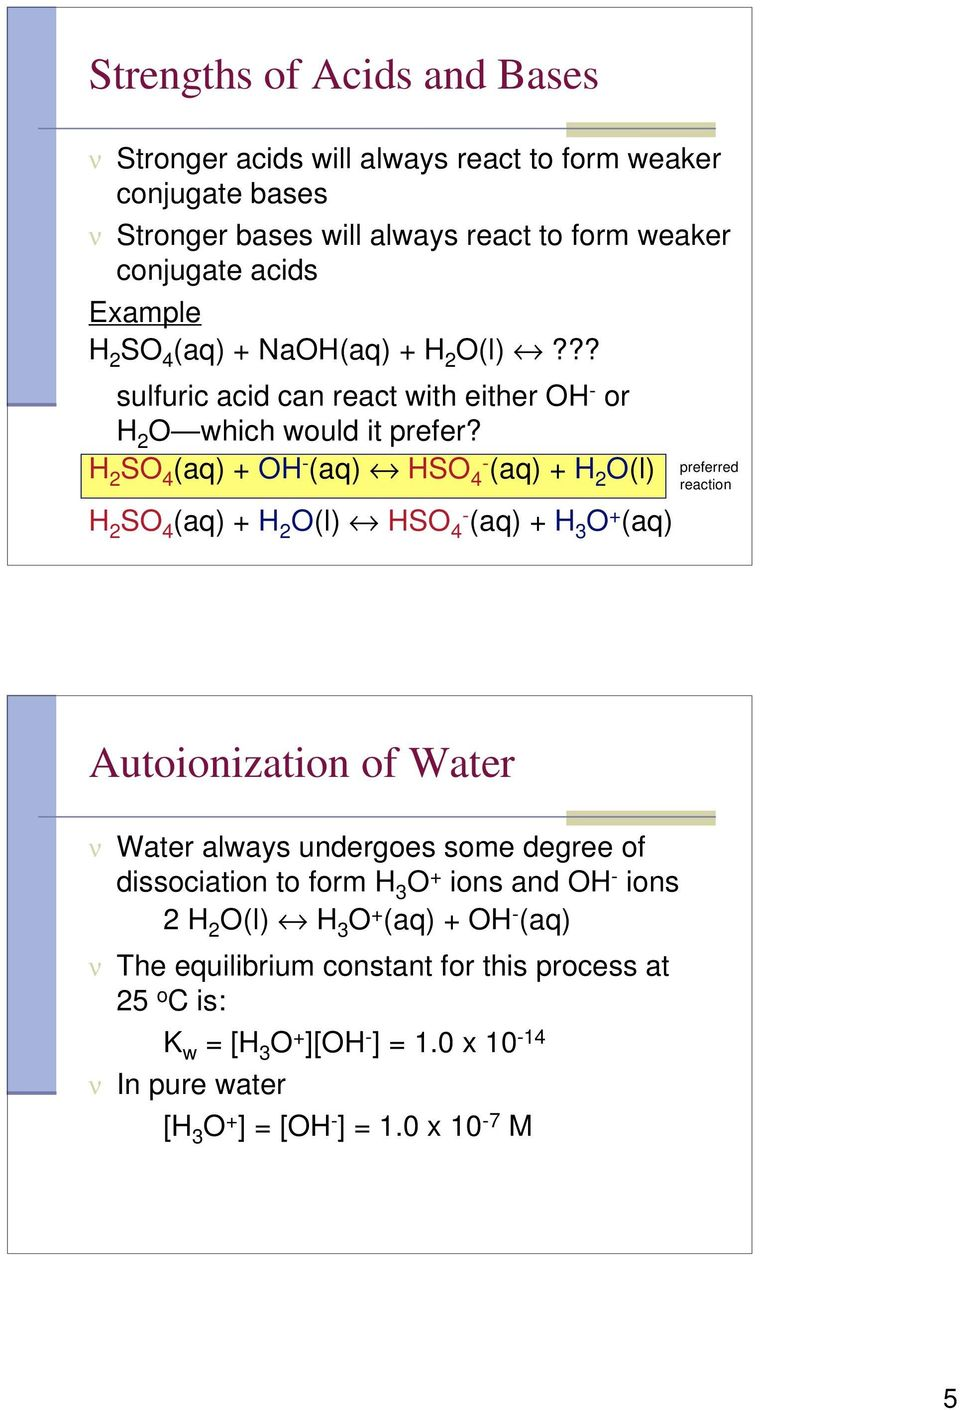 H 2 SO 4 (aq) + OH - (aq) HSO 4- (aq) + H 2 O(l) H 2 SO 4 (aq) + H 2 O(l) HSO 4- (aq) + H 3 O + (aq) preferred reaction Autoionization of Water ν Water always undergoes some